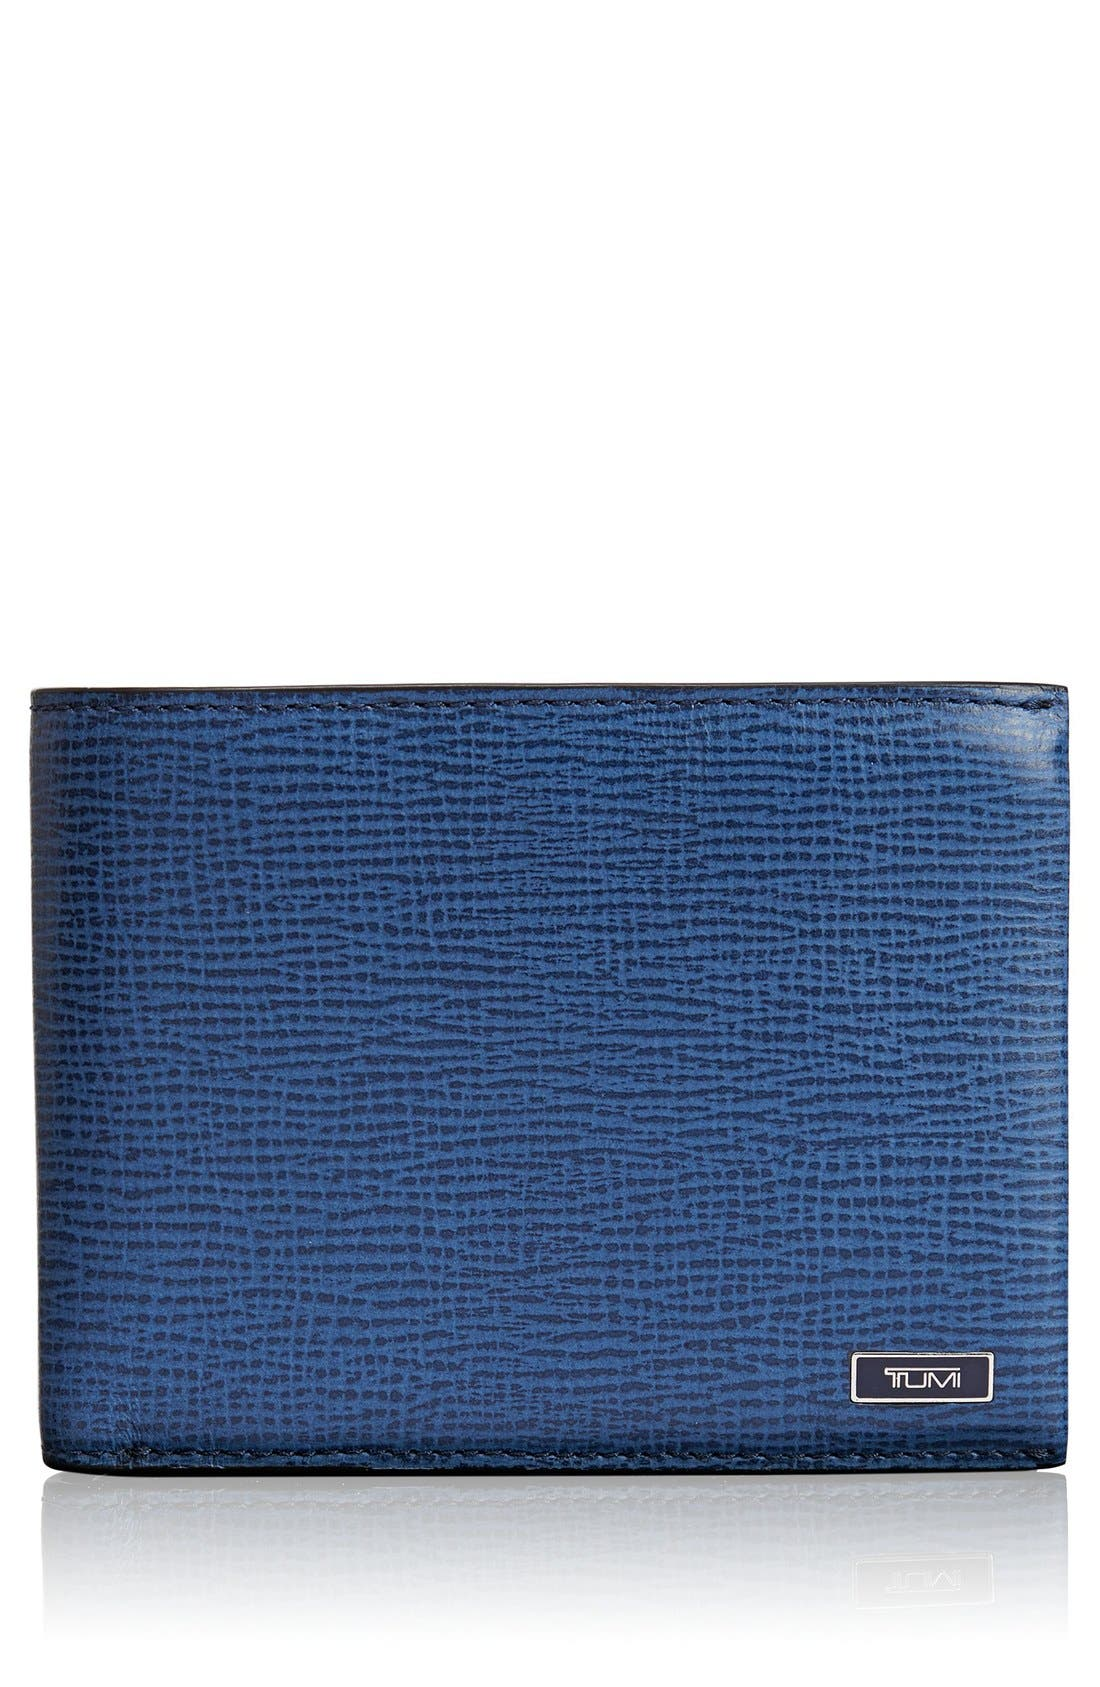 Monaco Global Leather Wallet with Coin Pocket,                             Main thumbnail 1, color,                             Cobalt